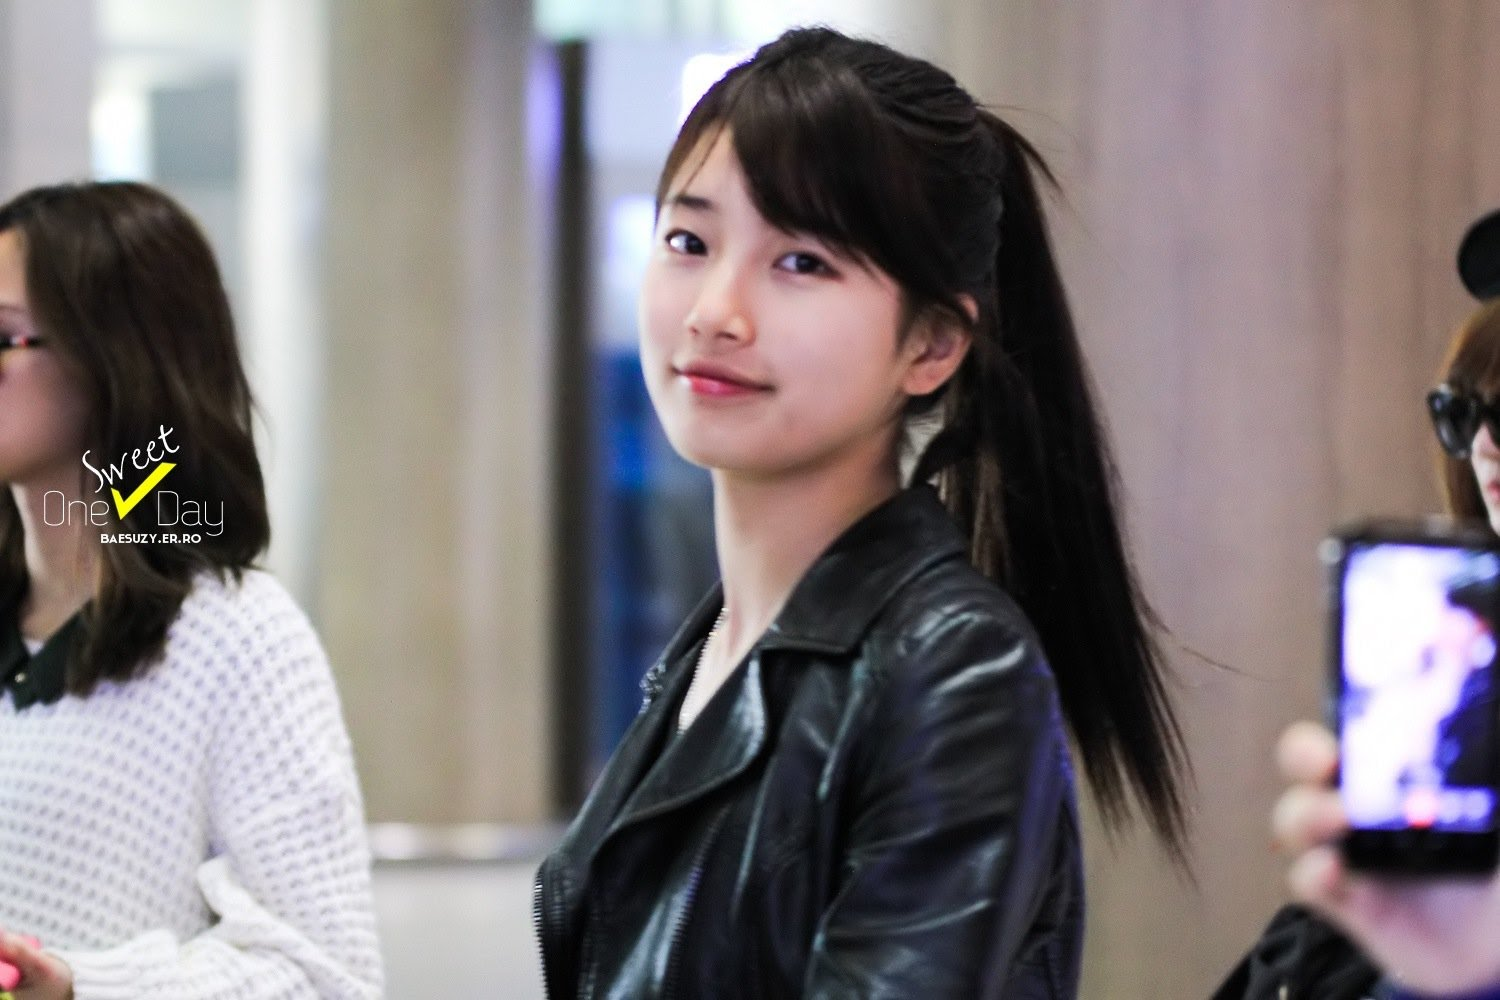 Suzy Wallpapers Music Hq Suzy Pictures 4k Wallpapers 2019